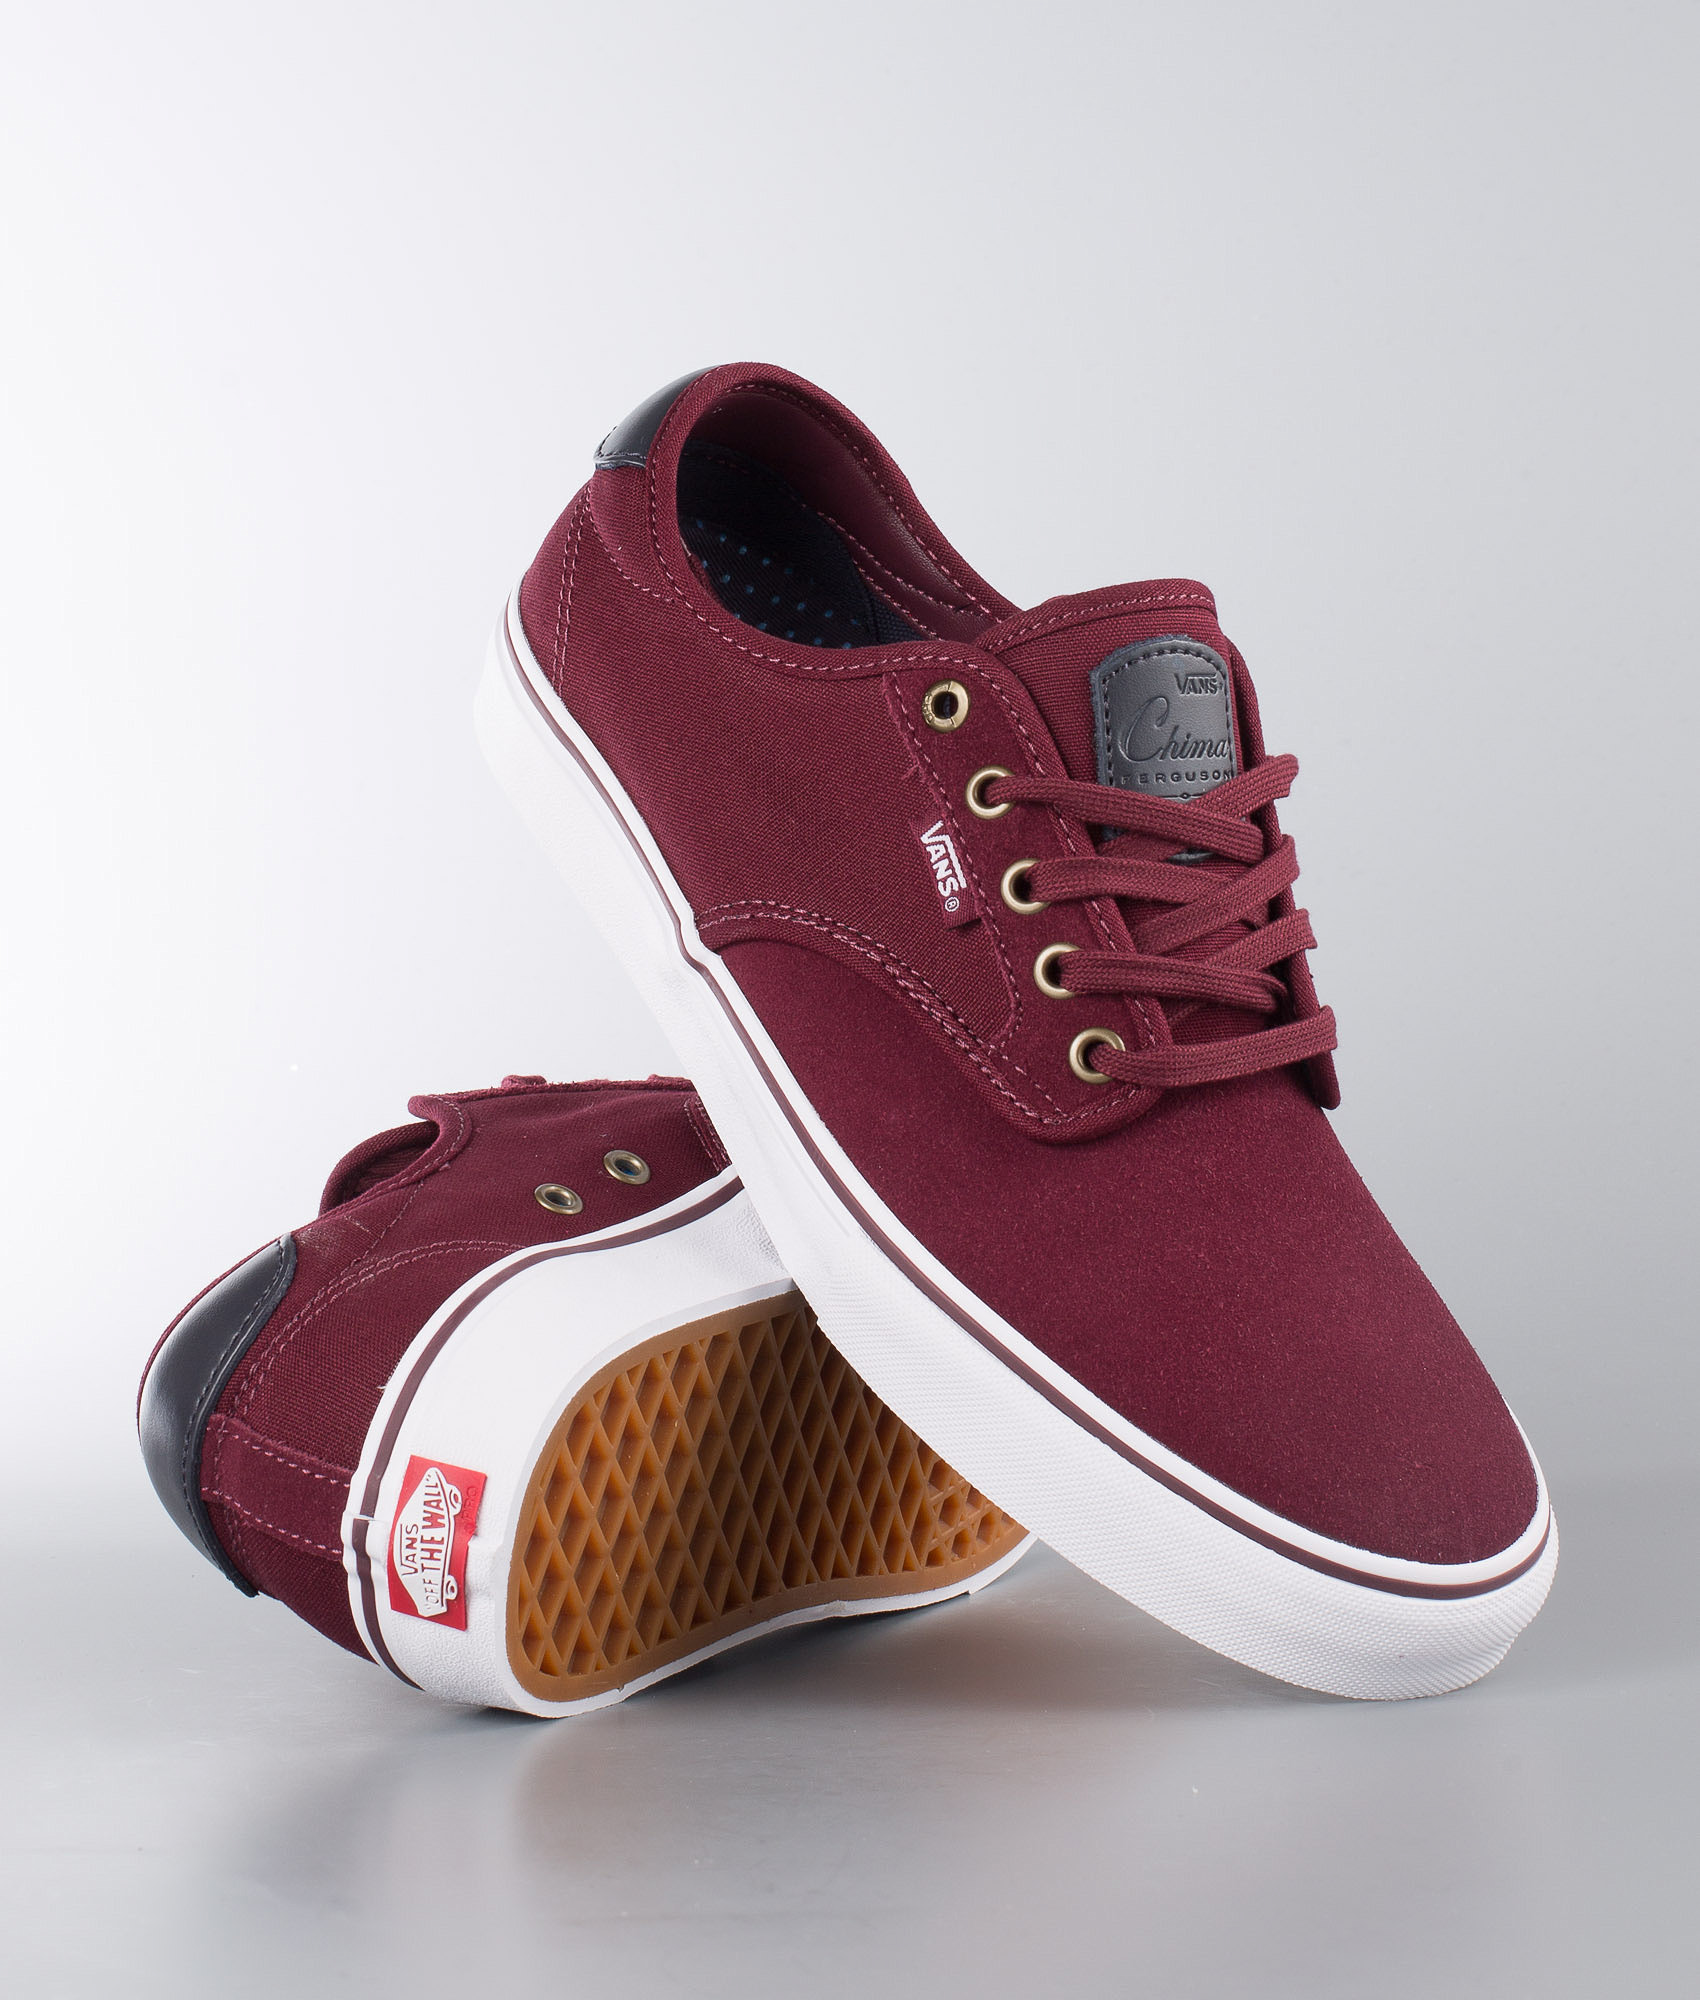 f012e0167f37d1 Vans Chima Ferguson Pro Shoes Port Royale Parisian Night - Ridestore.com